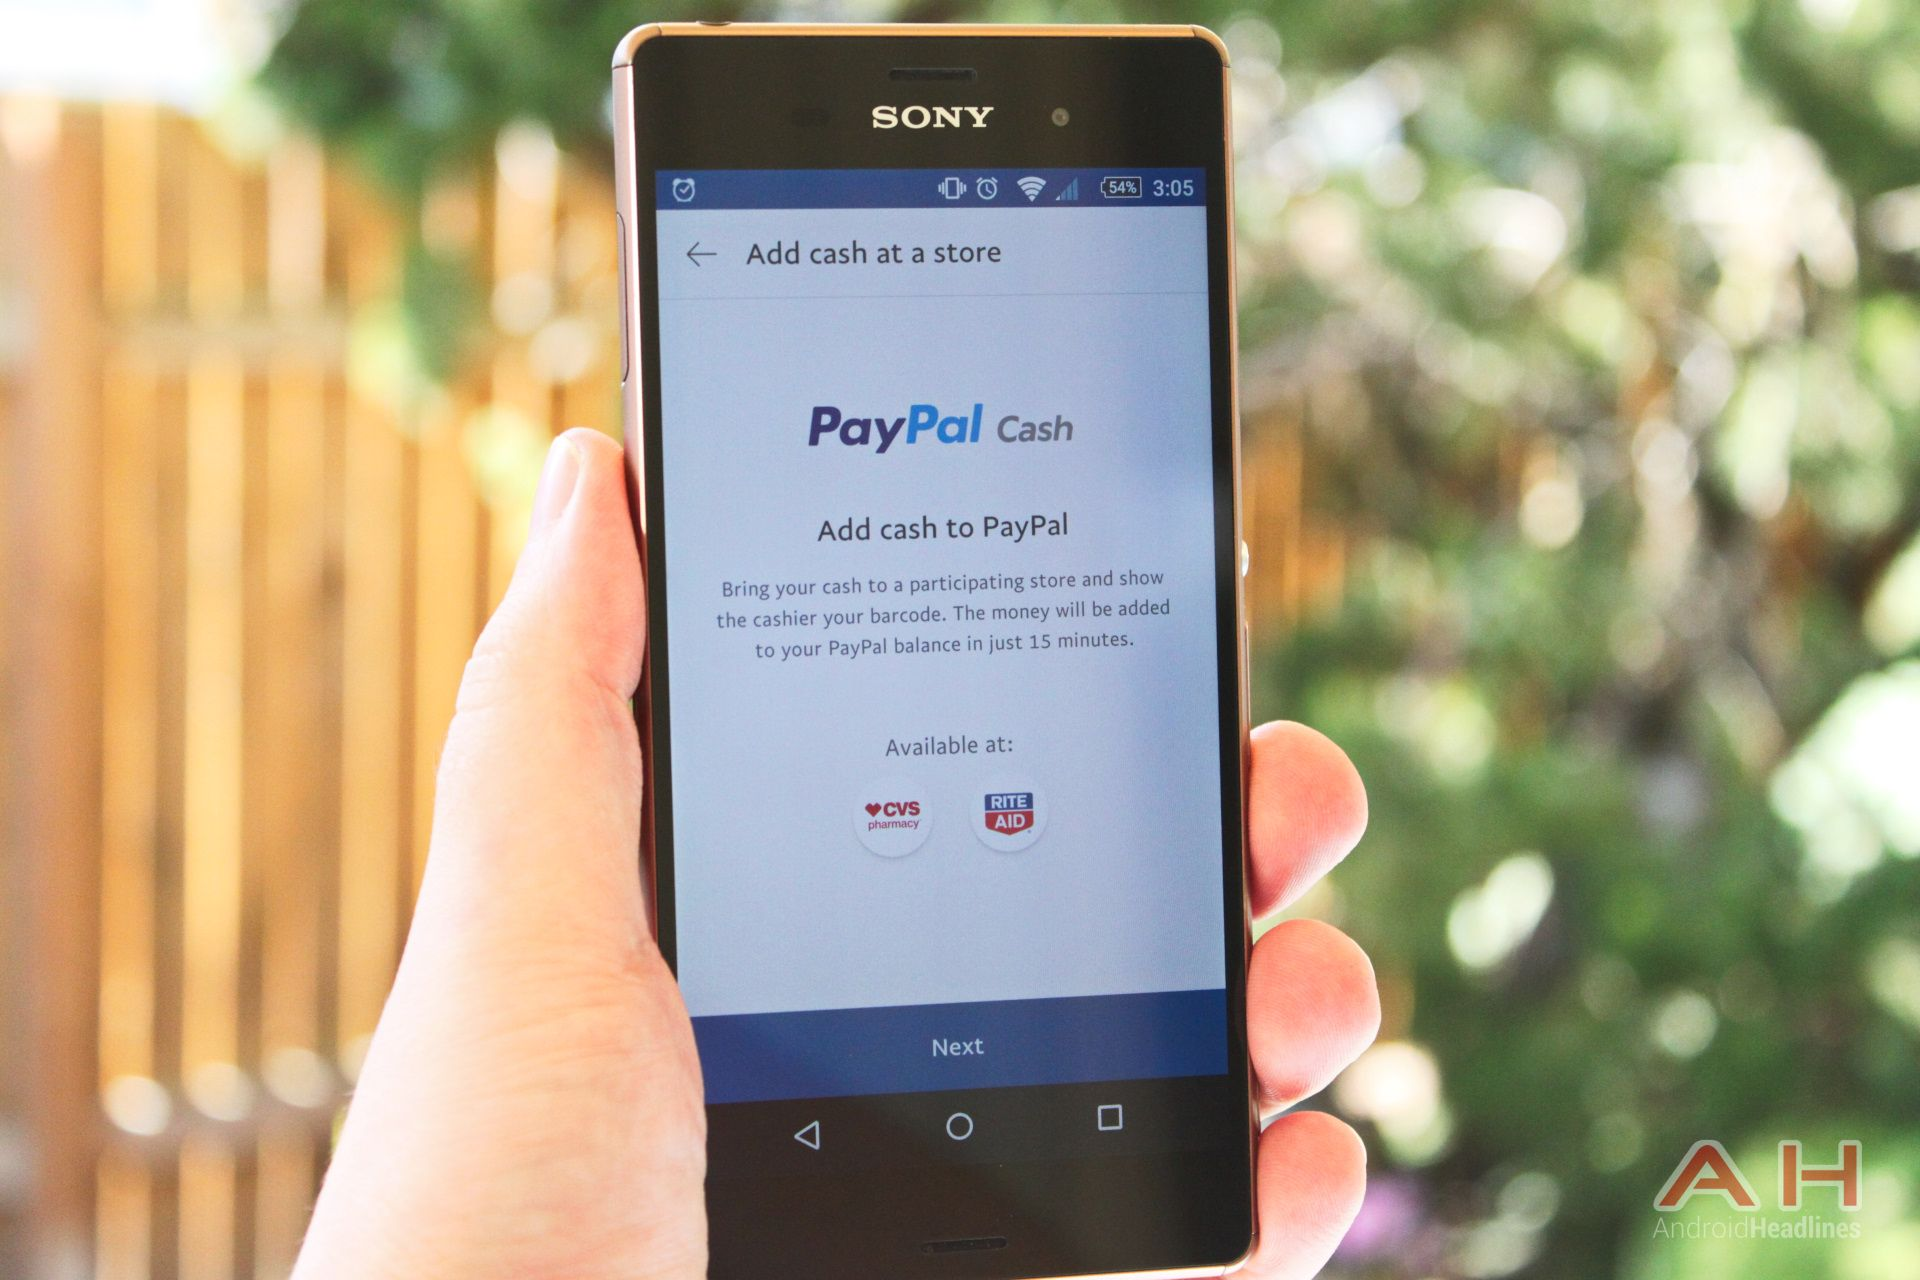 Download paypal gains ability to add cash to balance